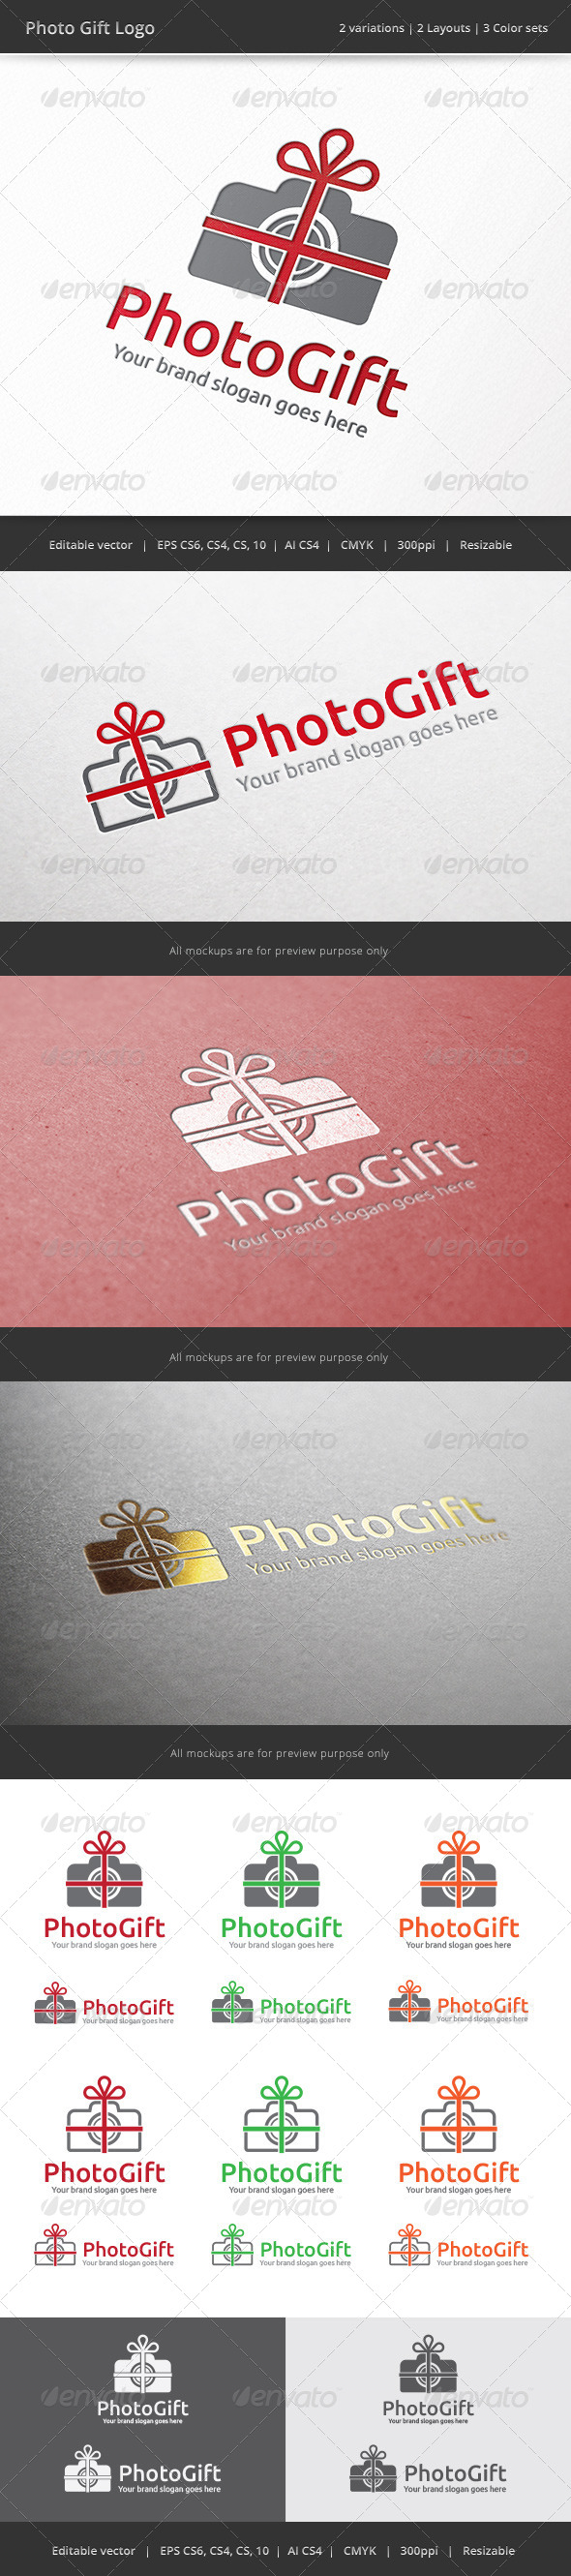 GraphicRiver Photo Gift Camera Logo 7841710